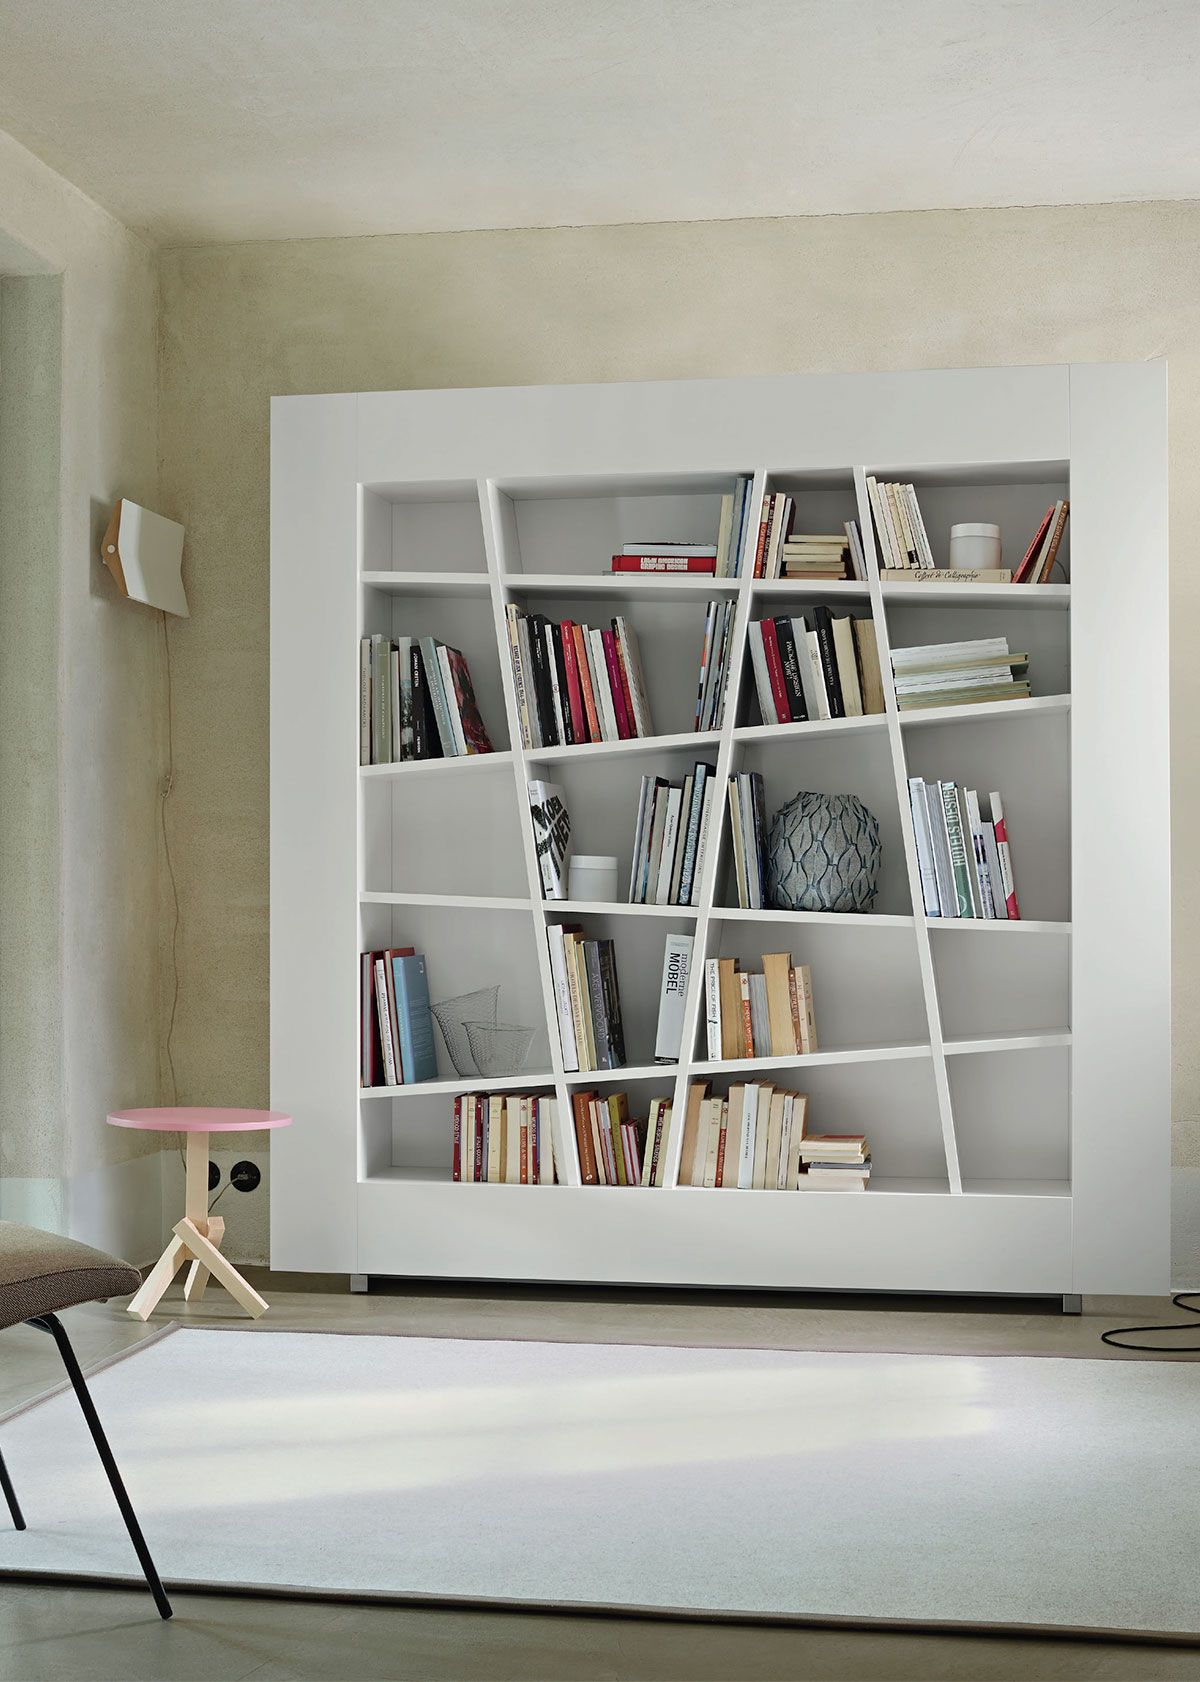 Lines Bookcase Designed By Peter Maly For Ligne Roset Available